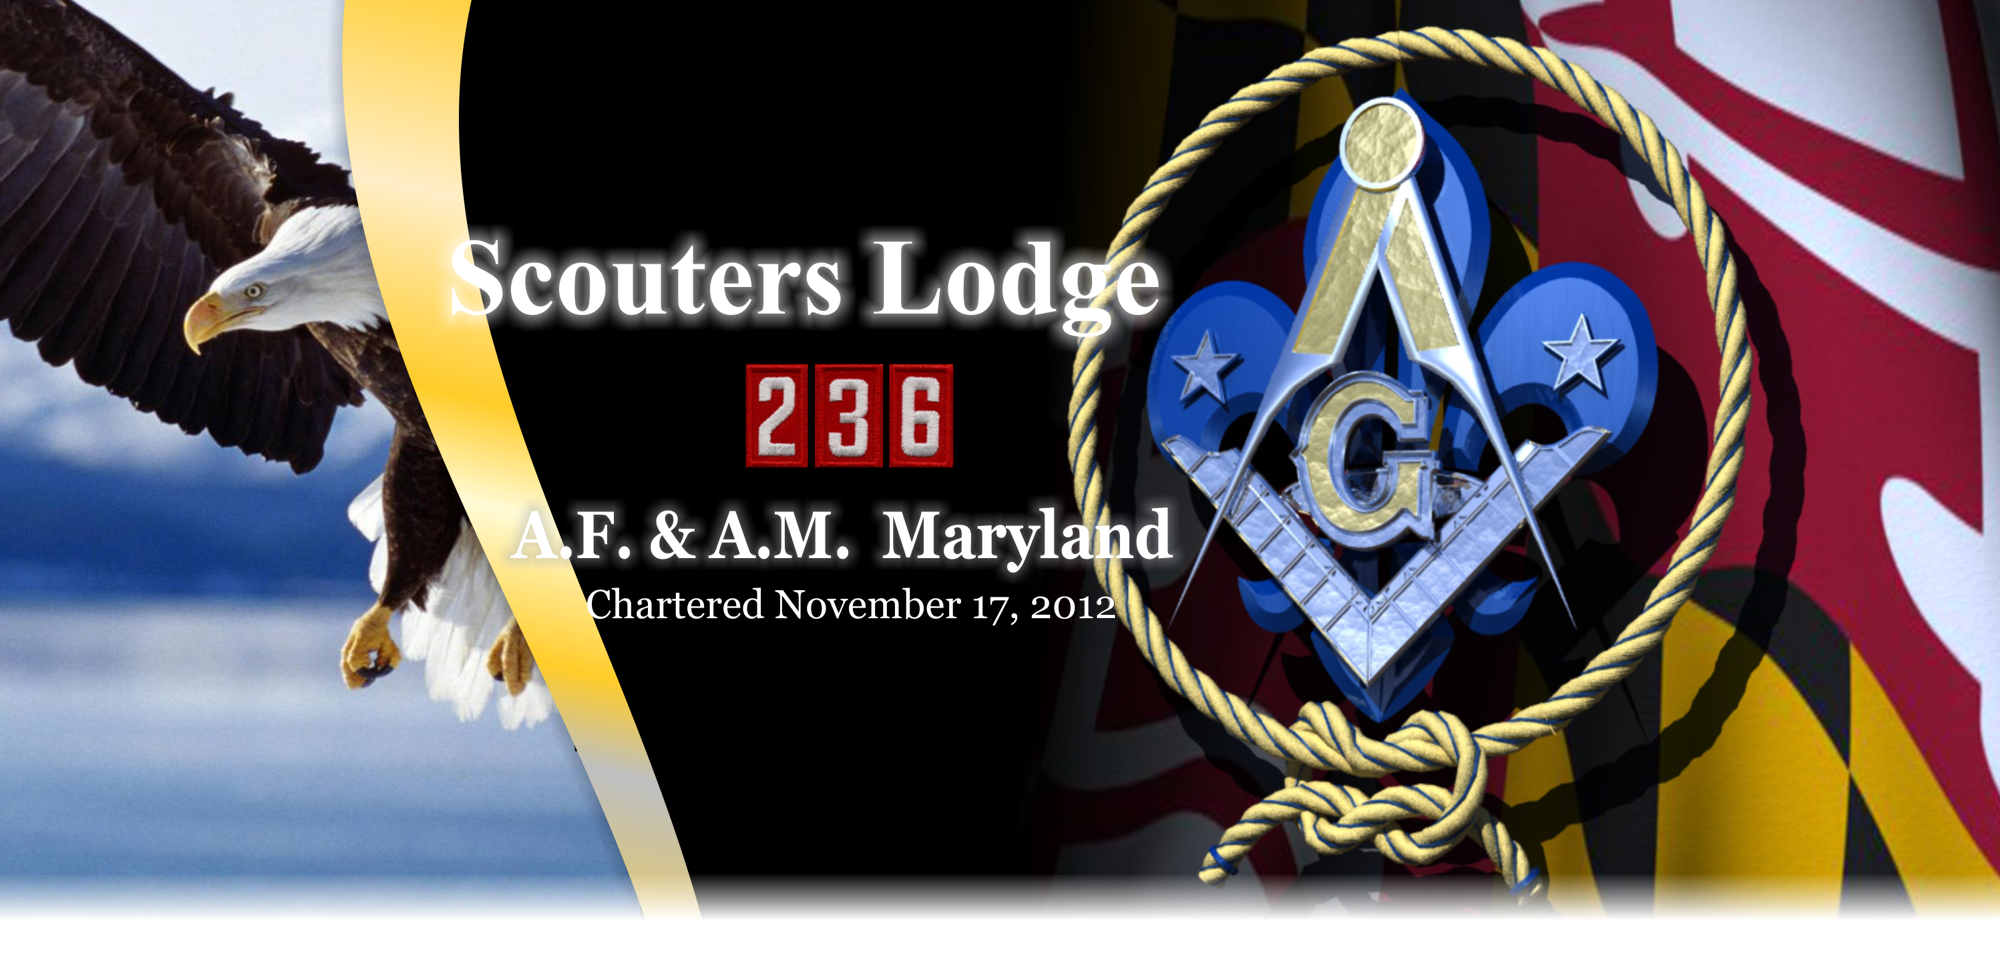 Scouters Lodge #236